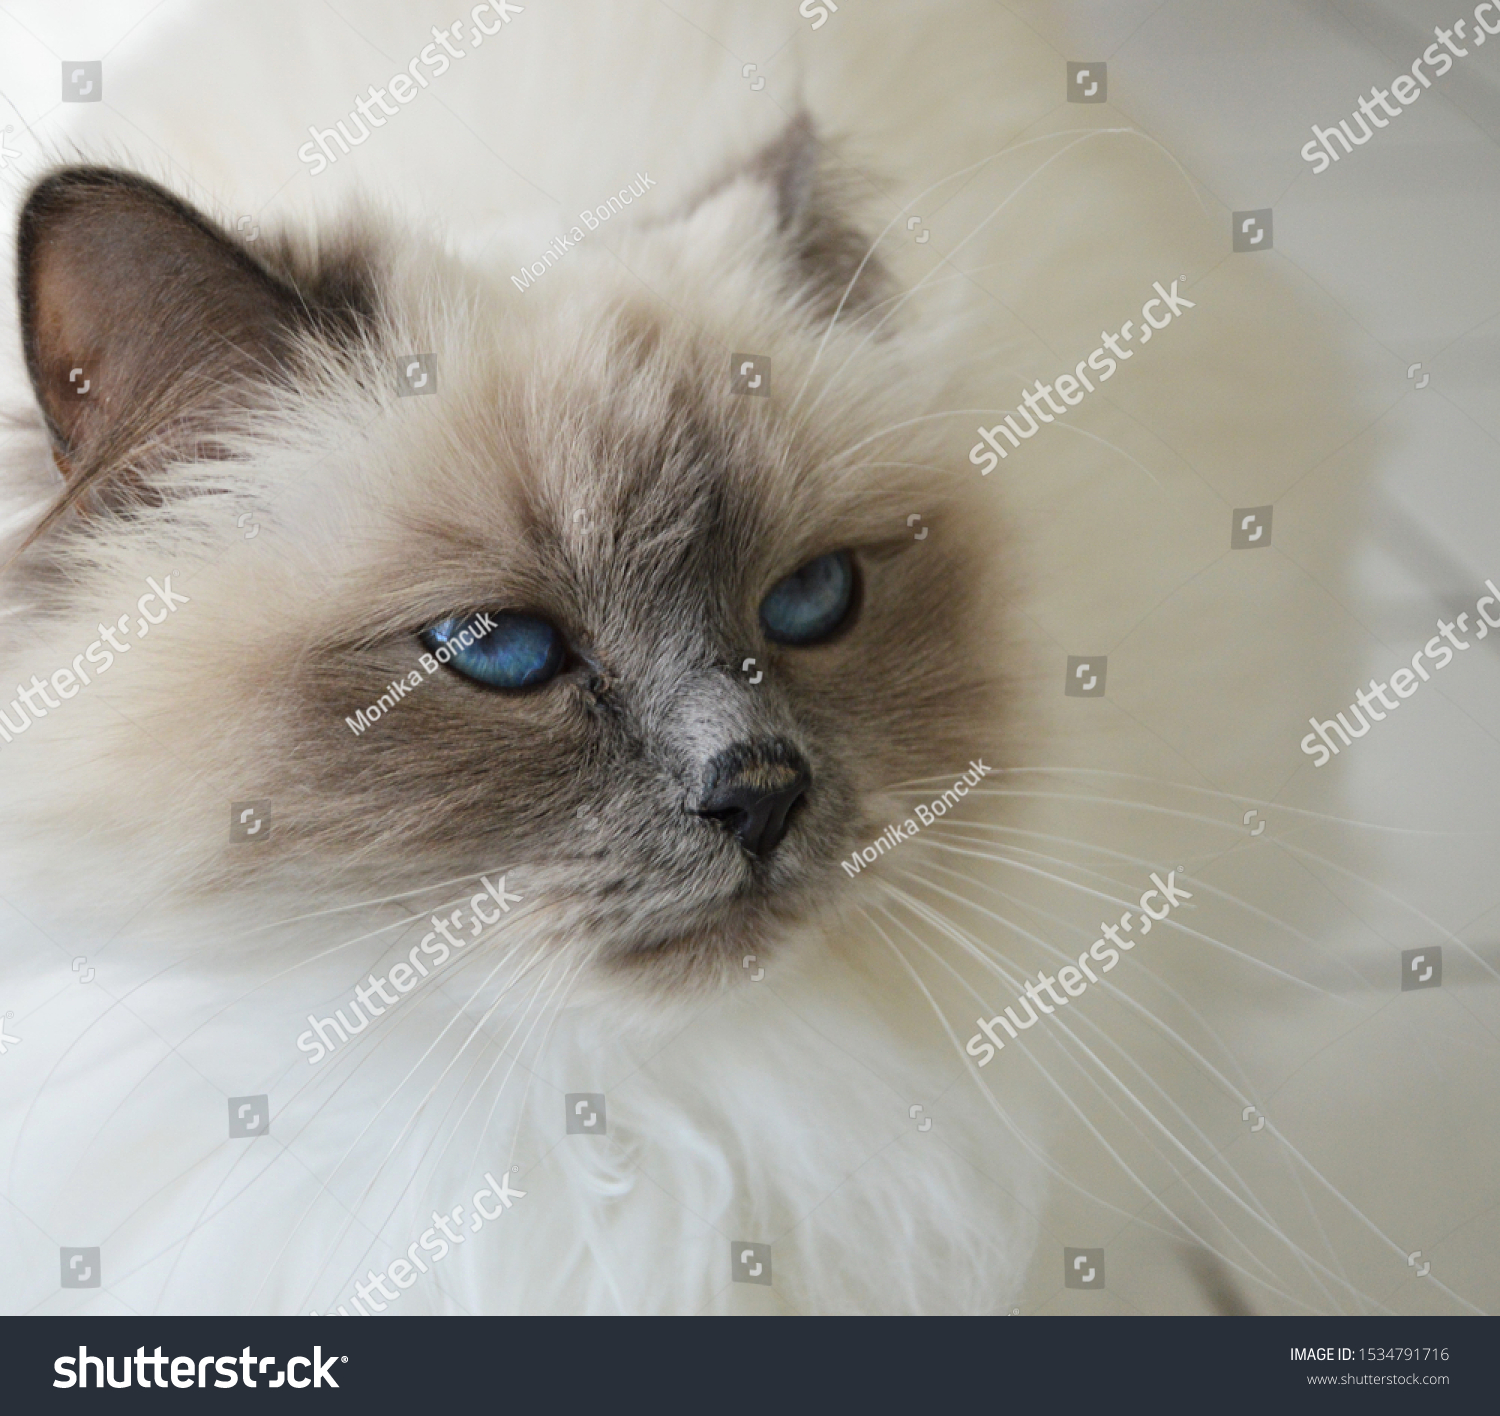 stock-photo-a-cute-white-cat-with-blue-e